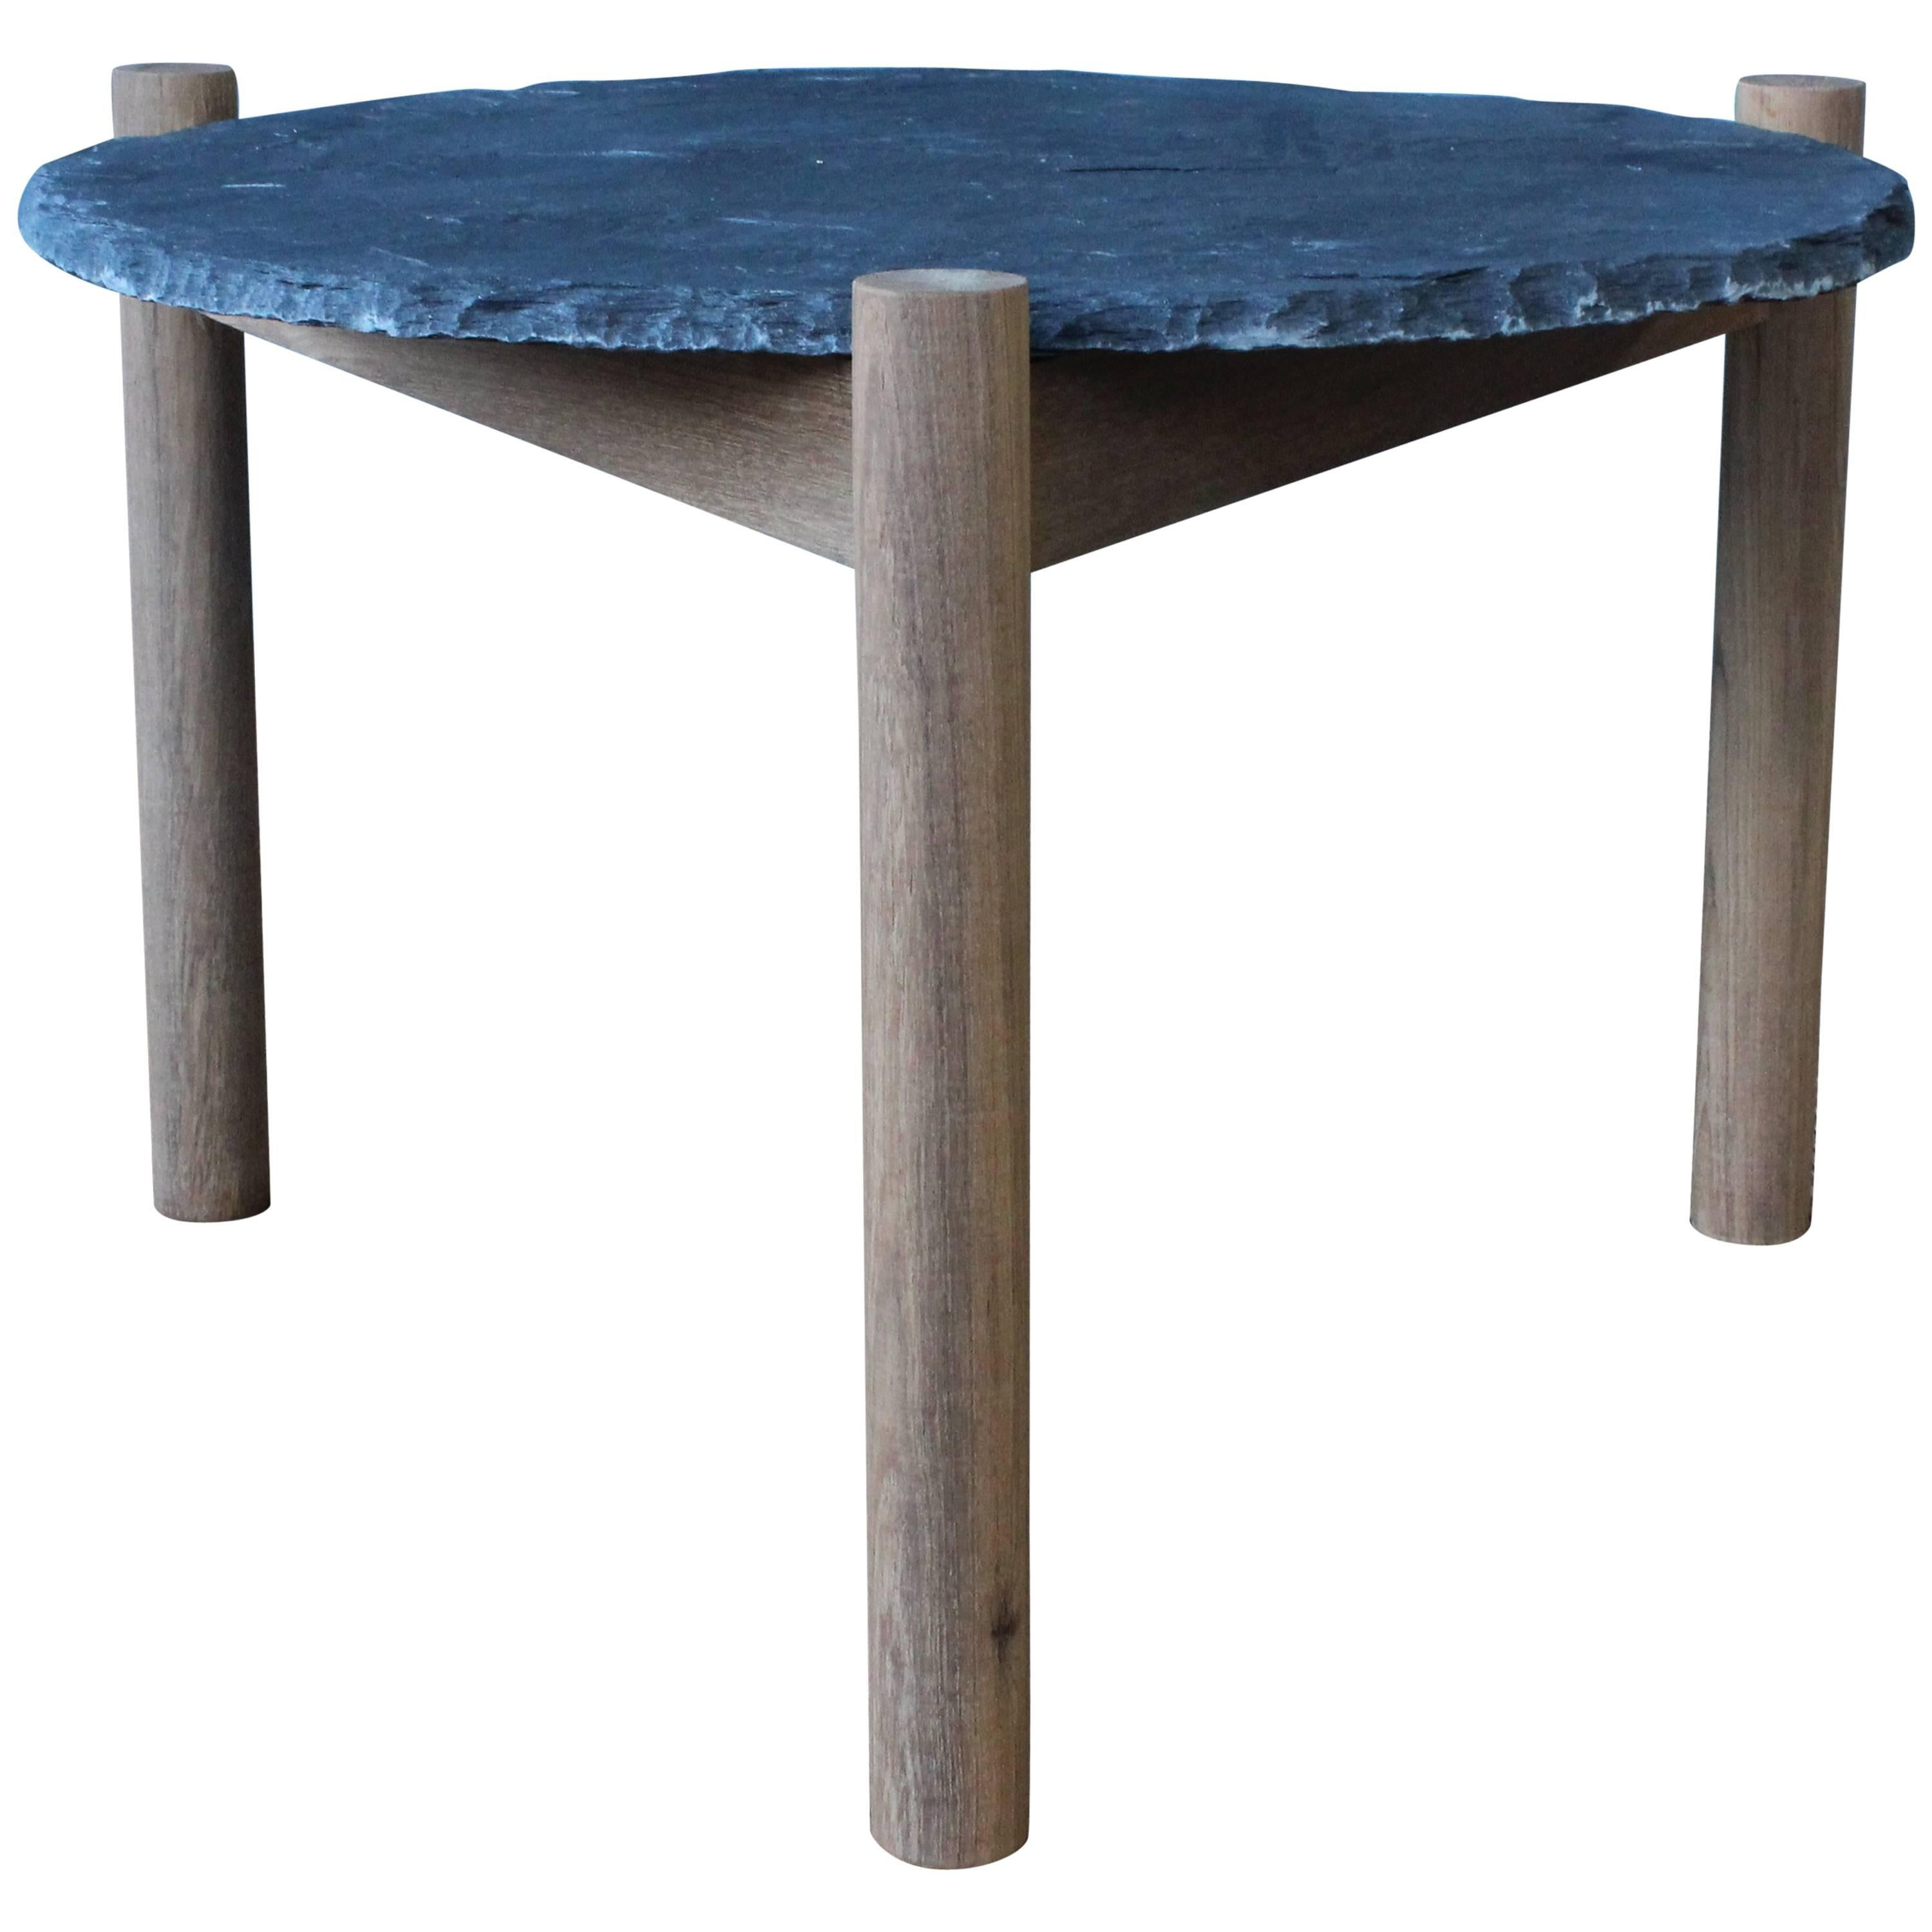 Slate Top Table With Teak Base, In The Style Of Pierre Jeanneret For Sale